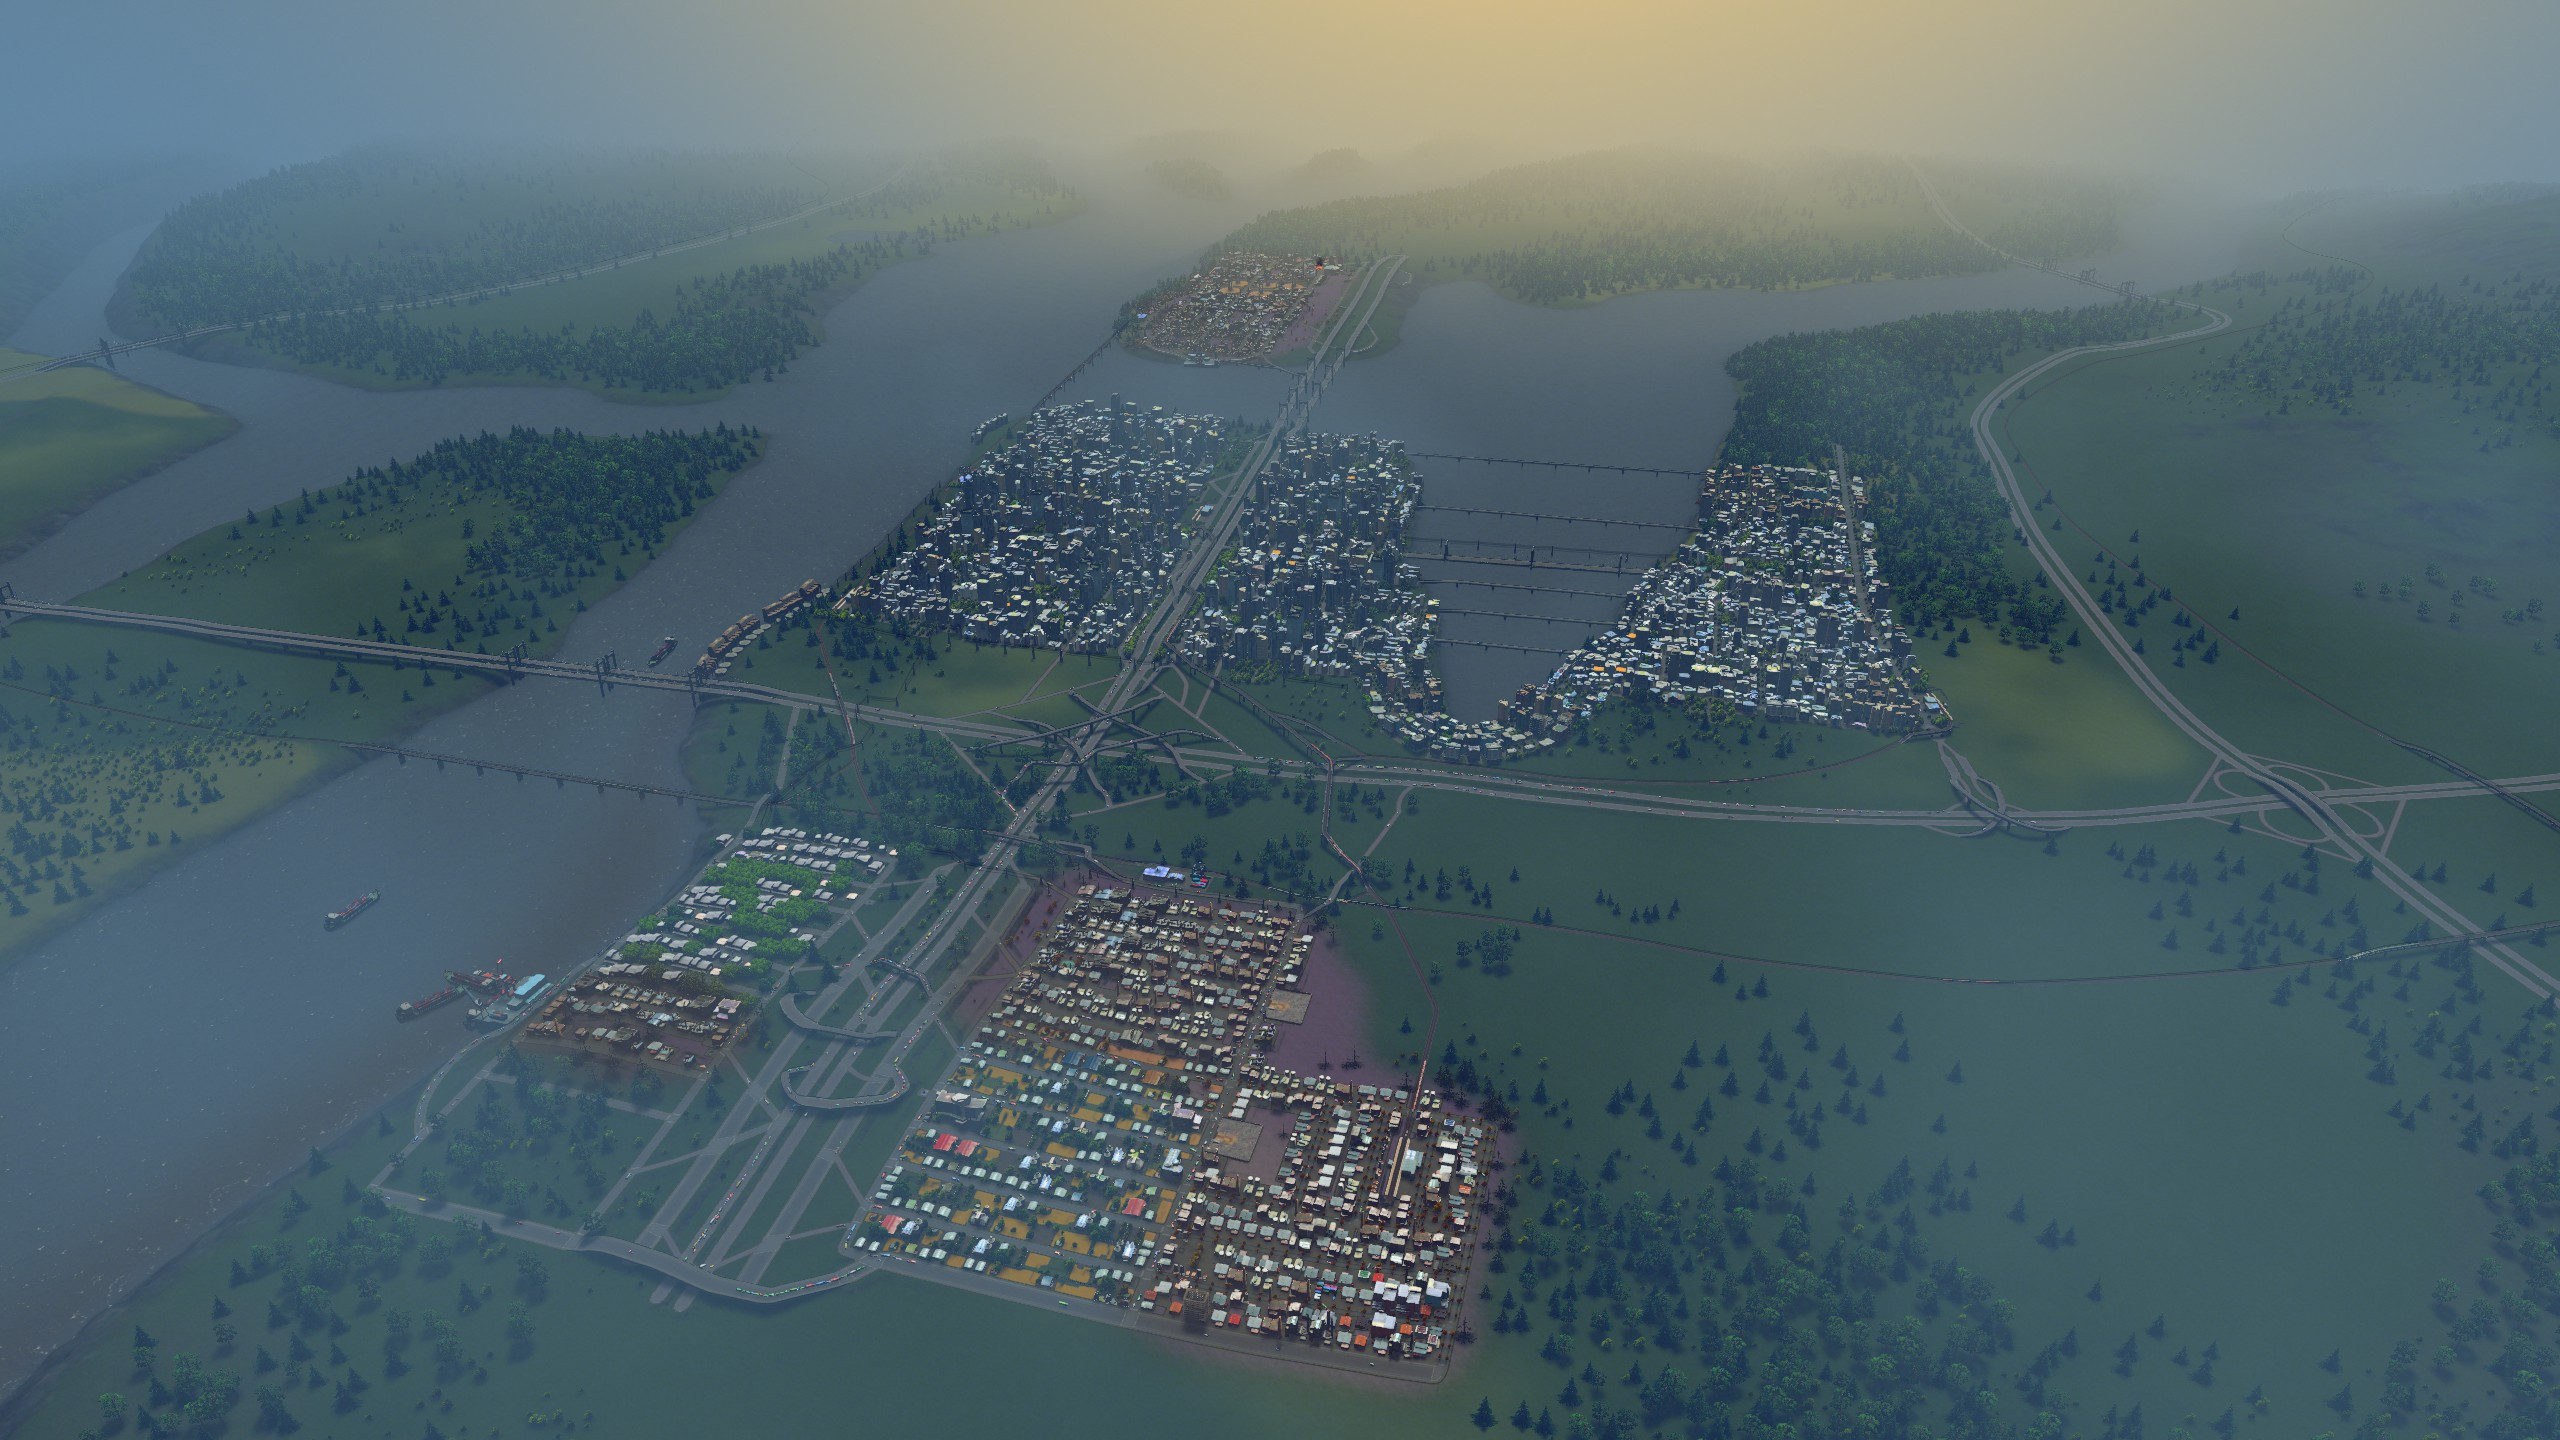 Cities Skylines Not Letting Me New Game